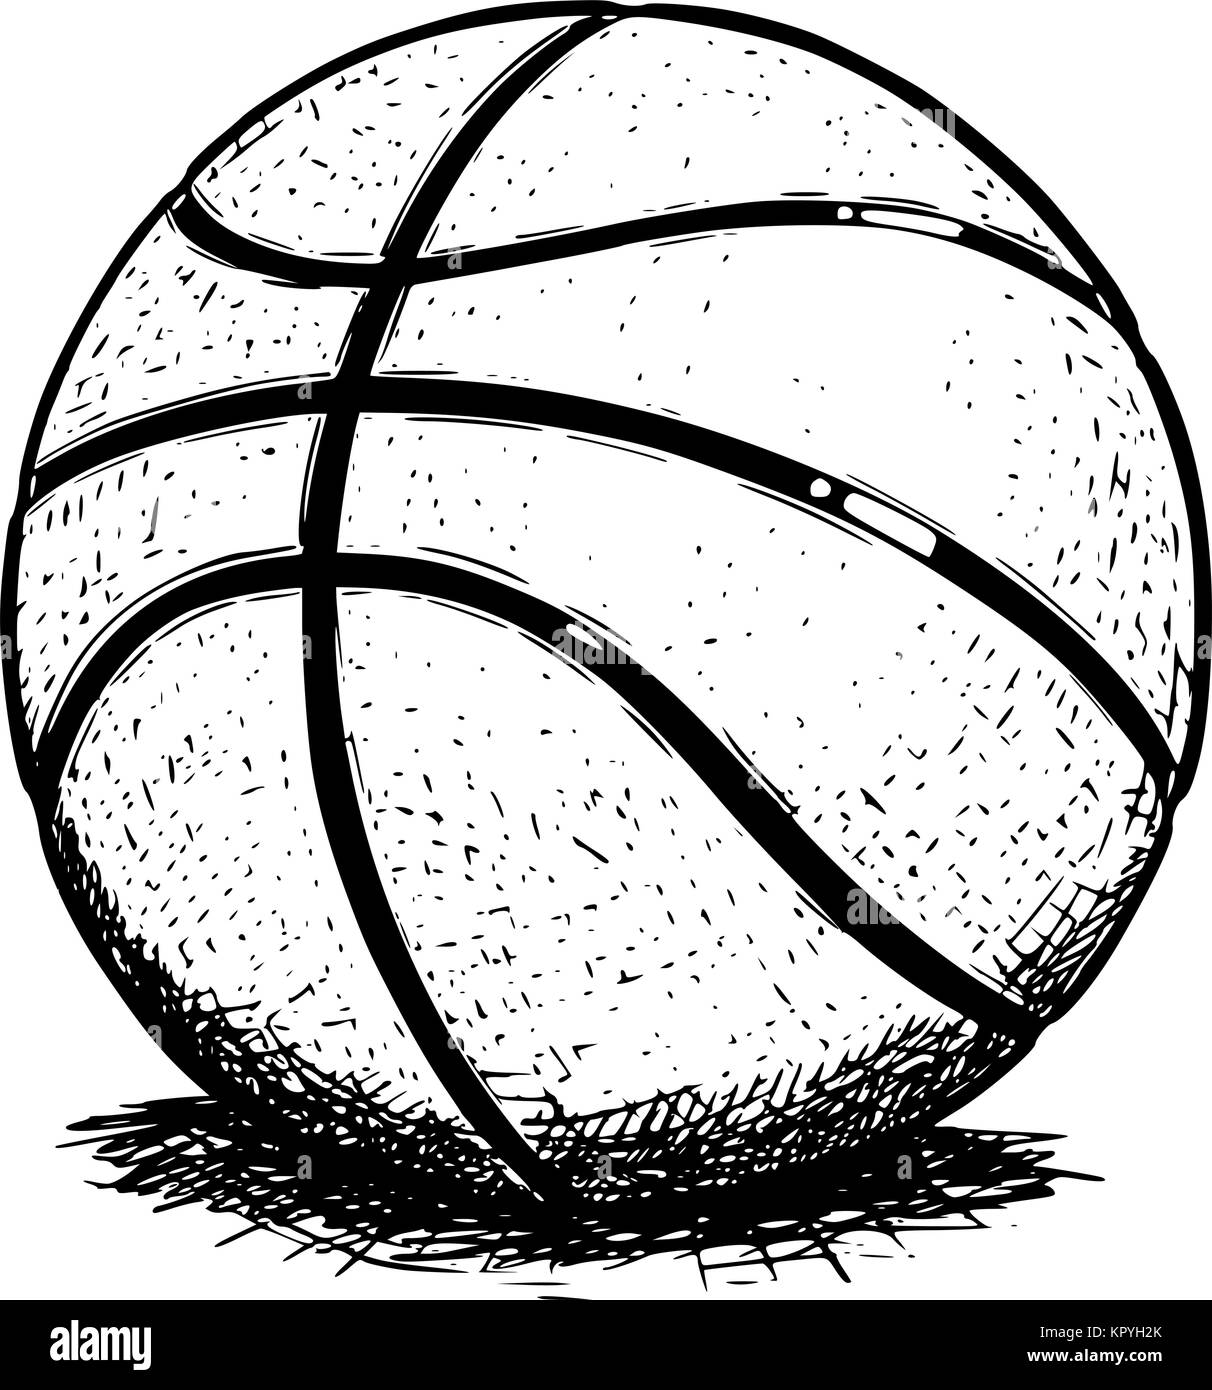 Vector hand drawing drawn illustration of basketball ball. - Stock Image